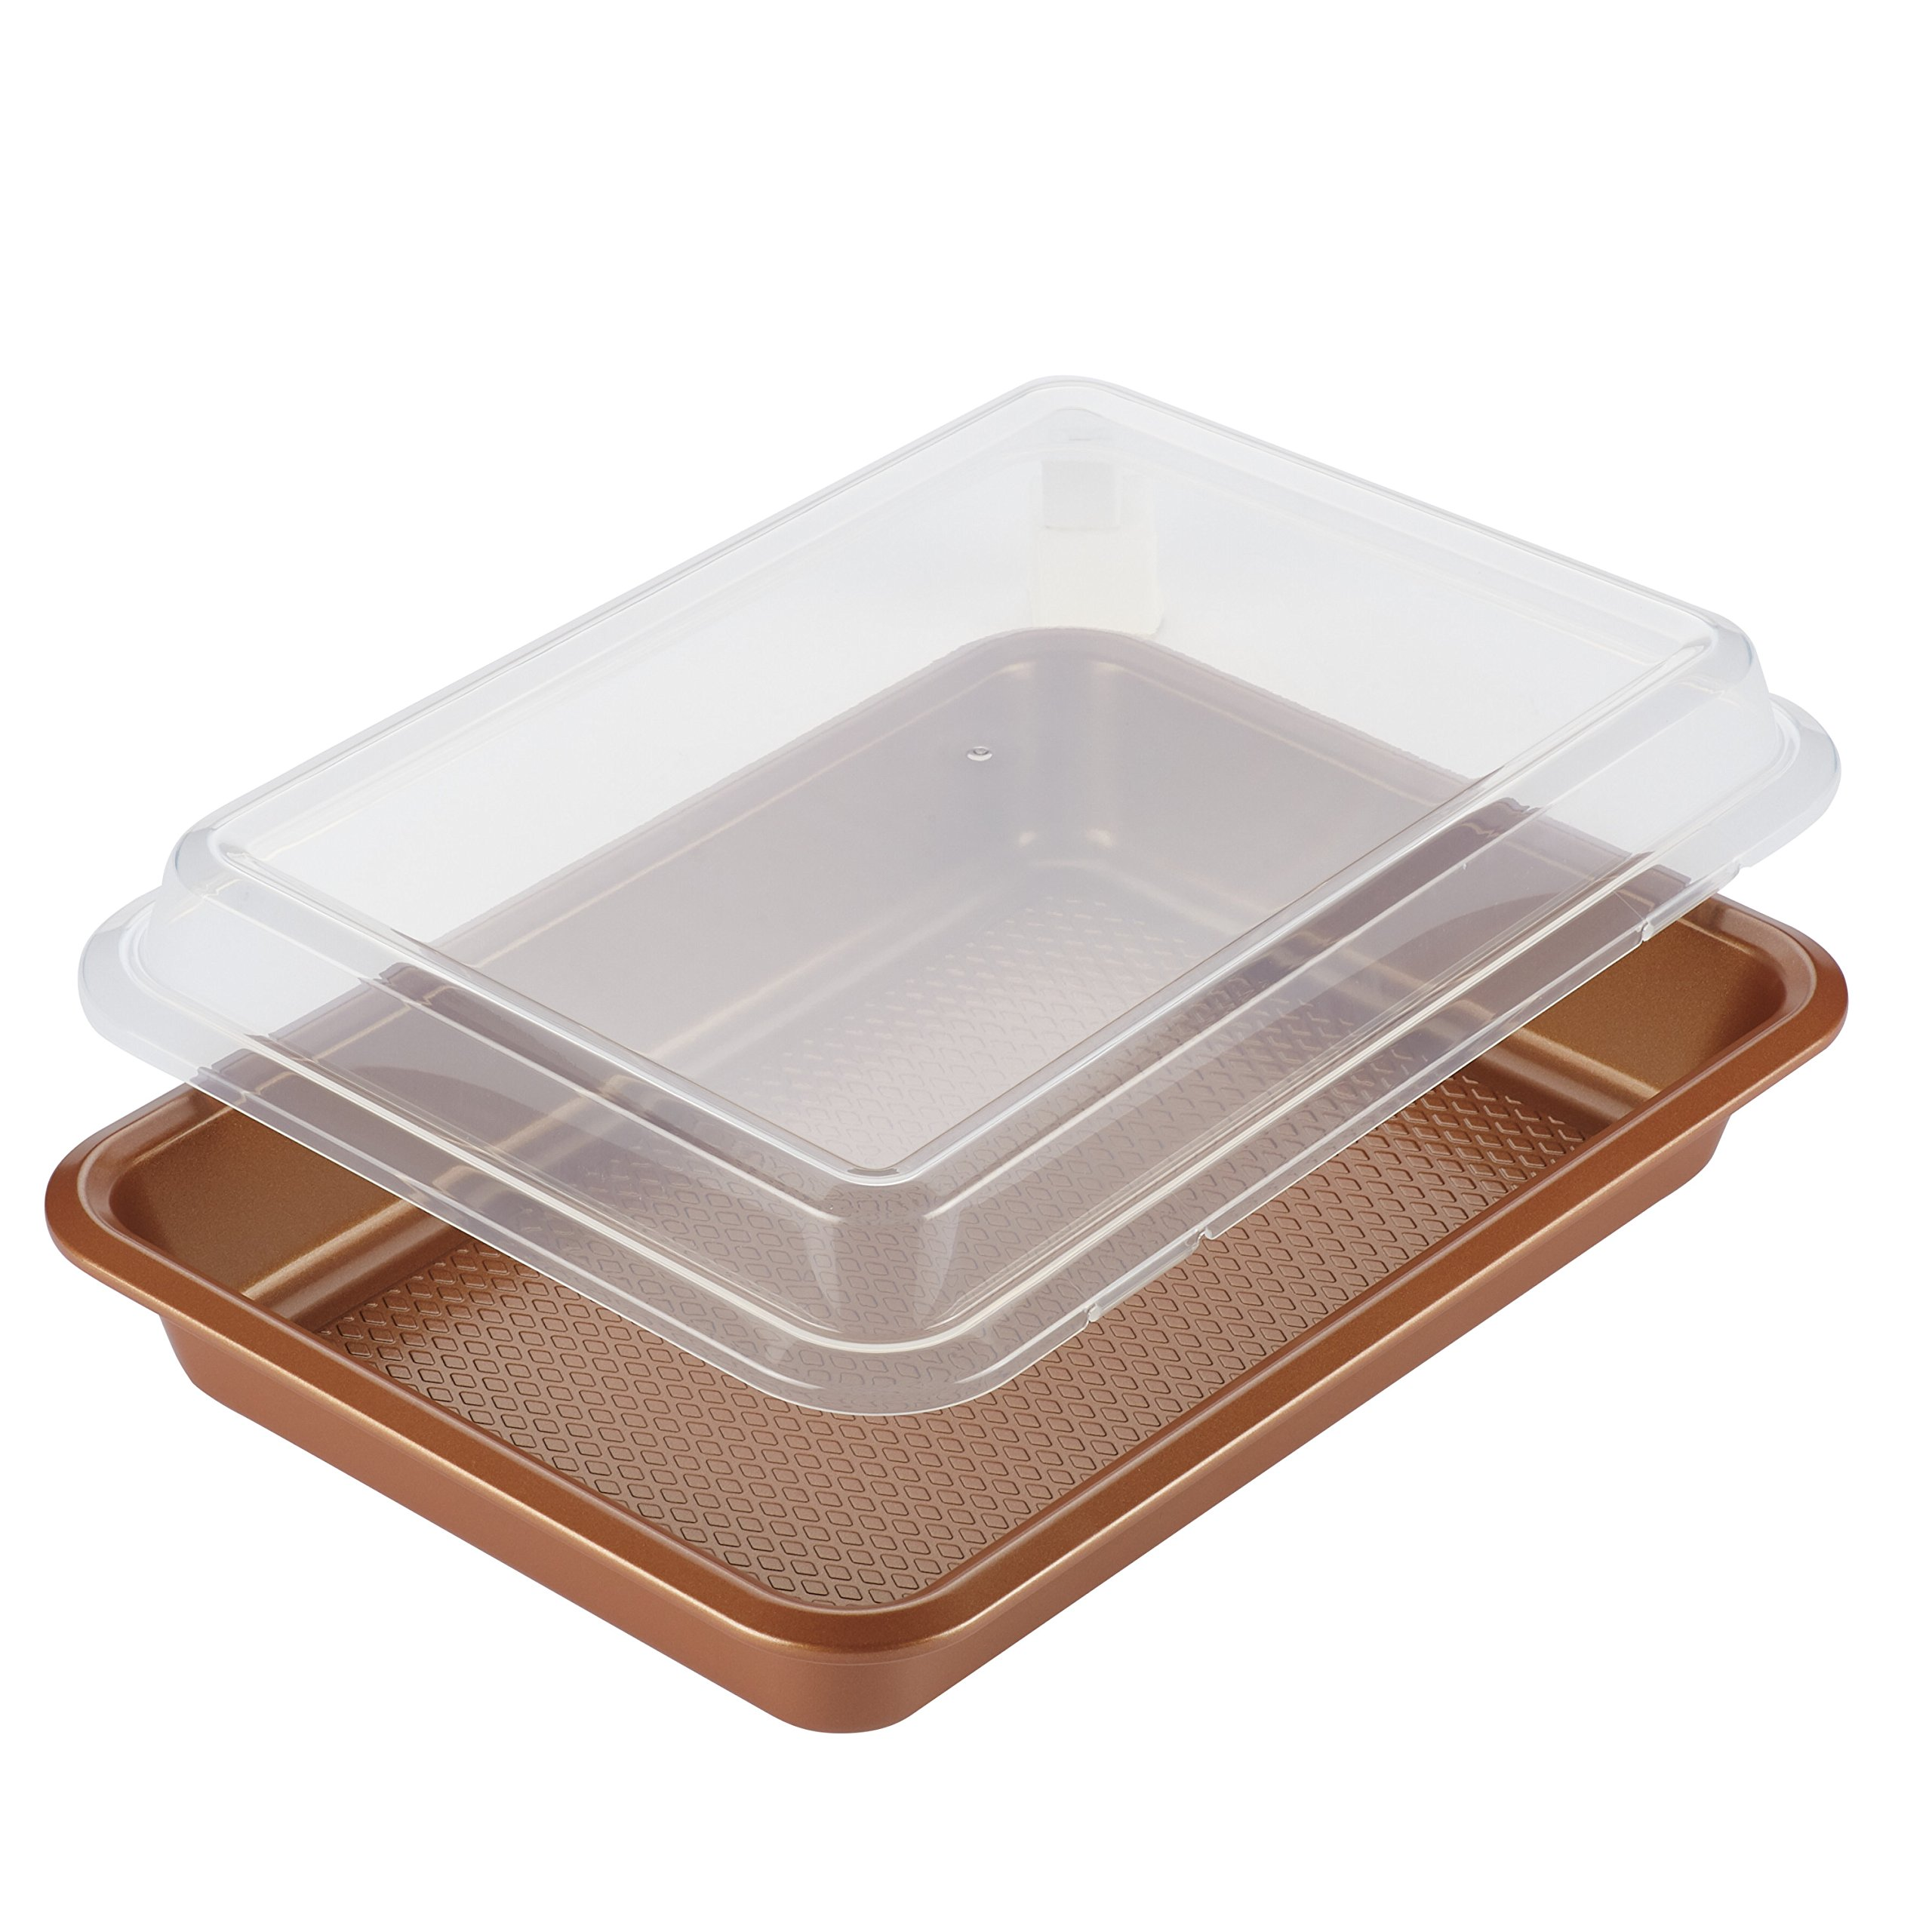 Ayesha Curry 47004 Bakeware Covered Rectangle Cake Pan, 9'' x 13'', Copper by Ayesha Curry Kitchenware